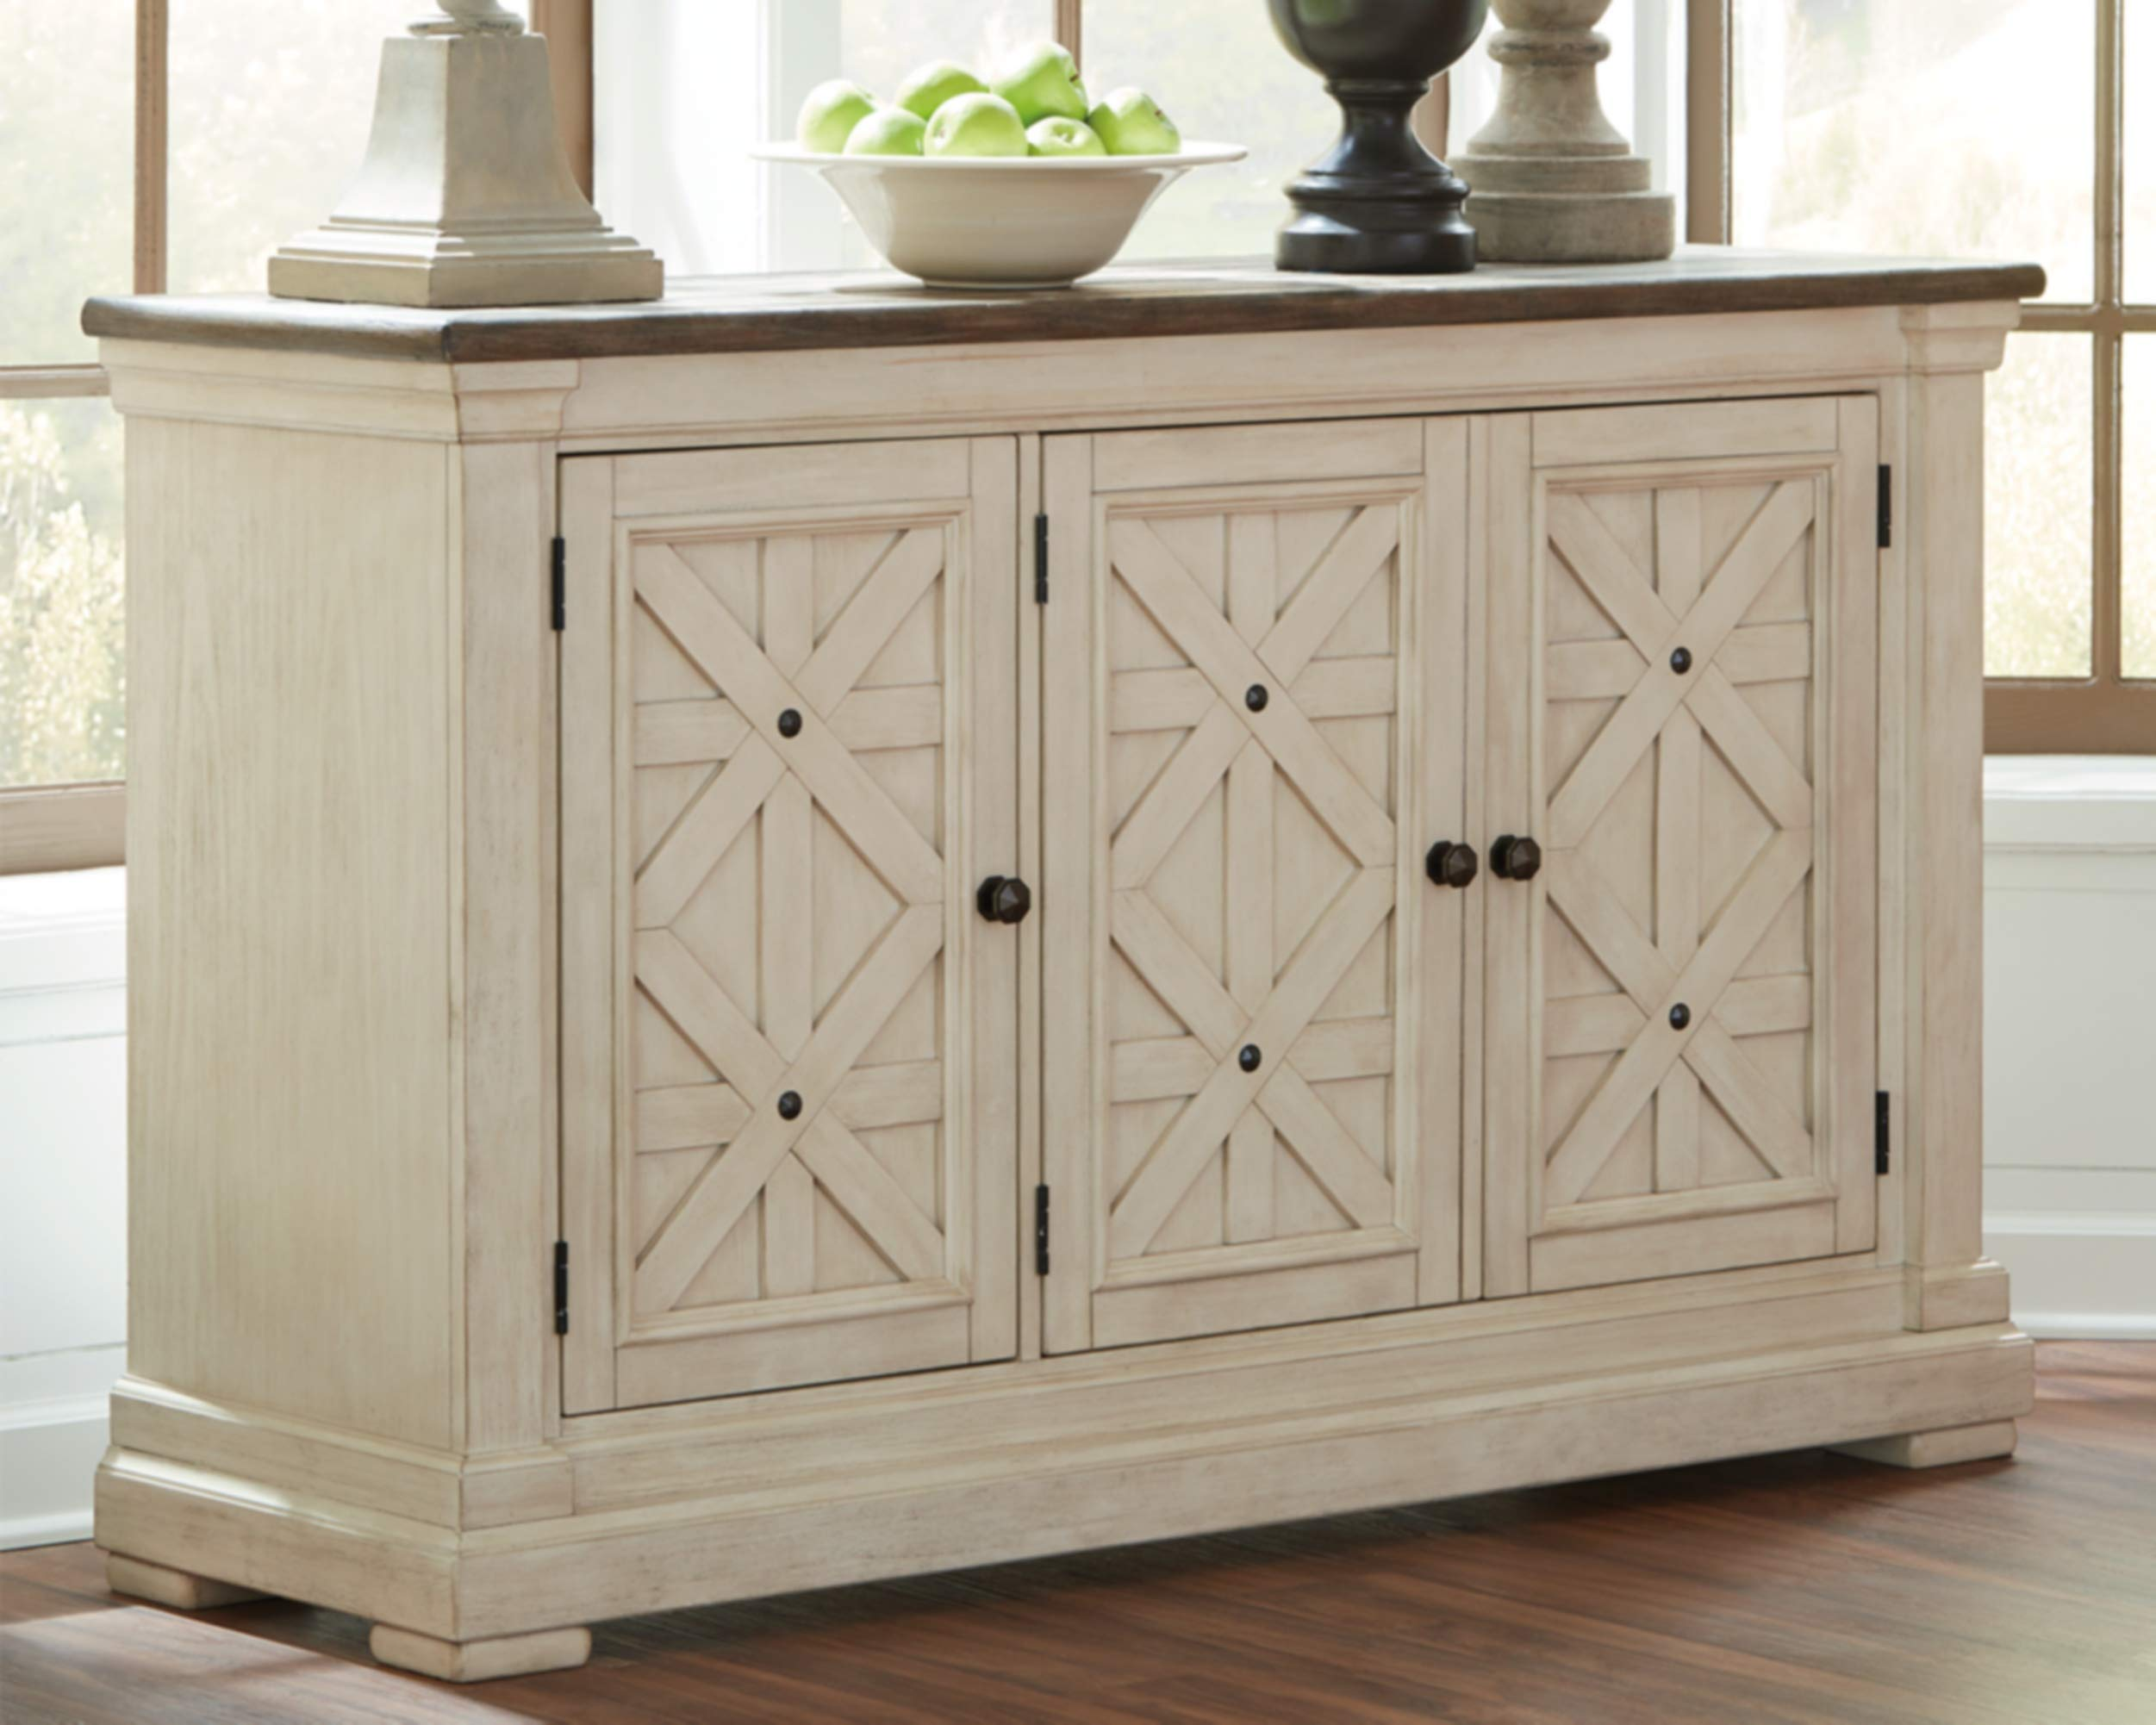 Ashley Furniture Signature Design - Bolanburg Dining Room Server - Vintage Casual - Weathered Oak/Antique White by Signature Design by Ashley (Image #2)